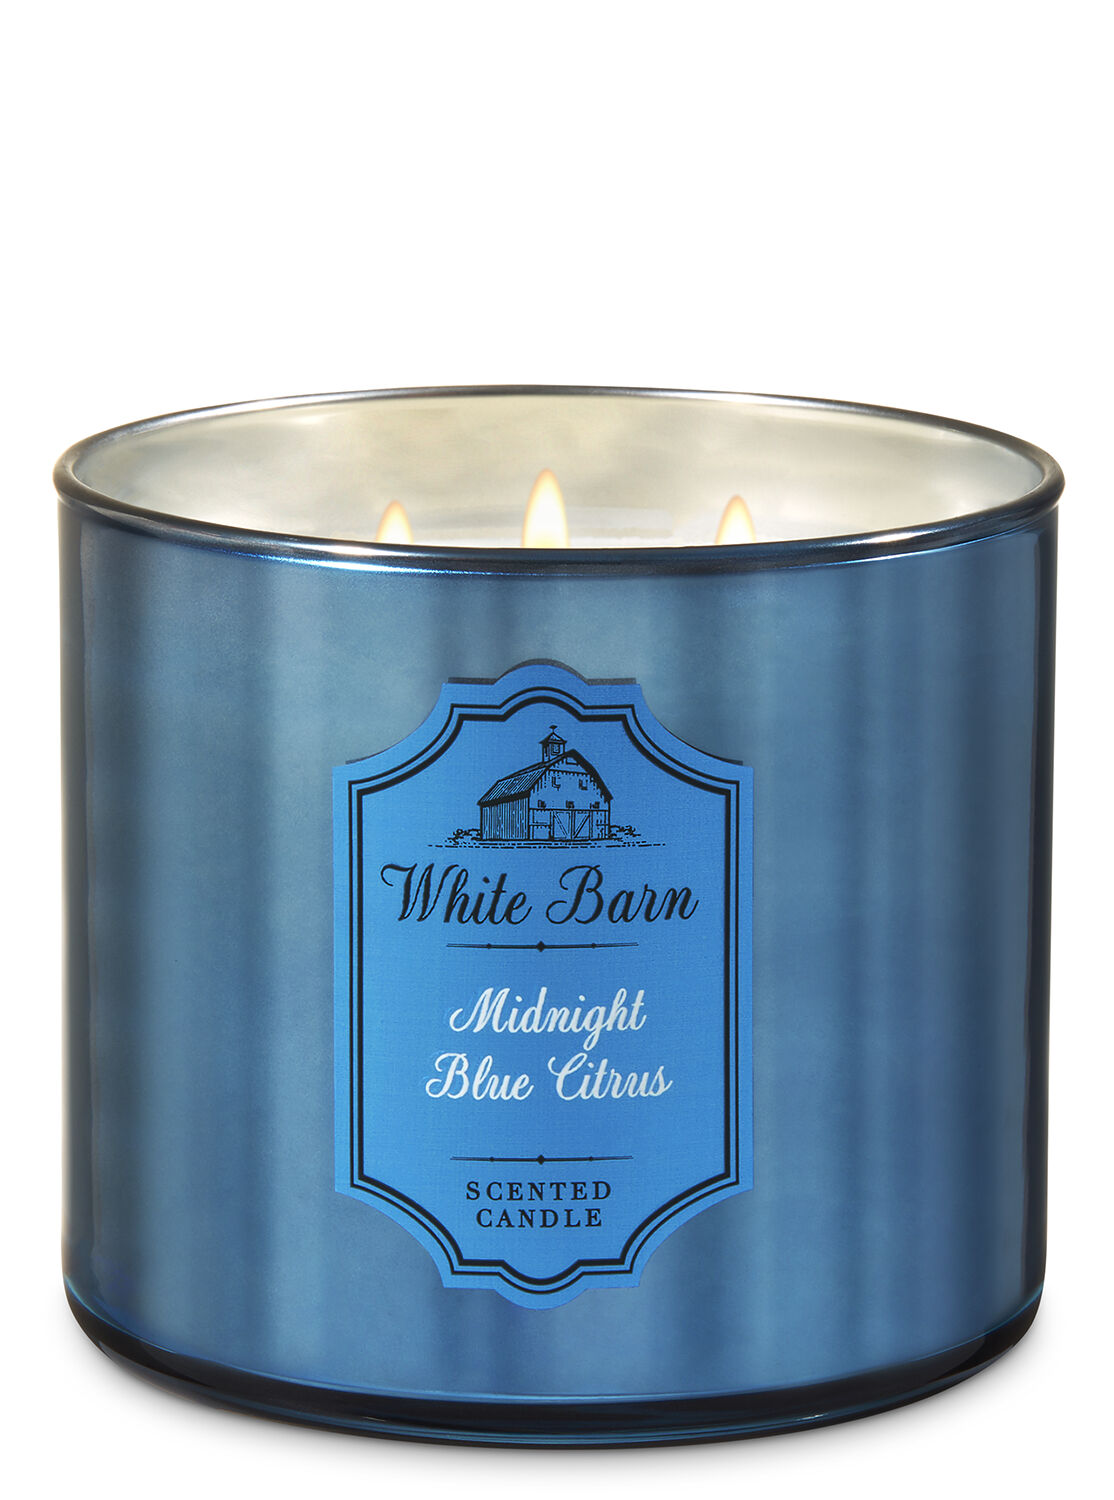 Bergamot Waters 3-Wick Candle - White Barn | Bath  for Blue Candle White Background  55dqh